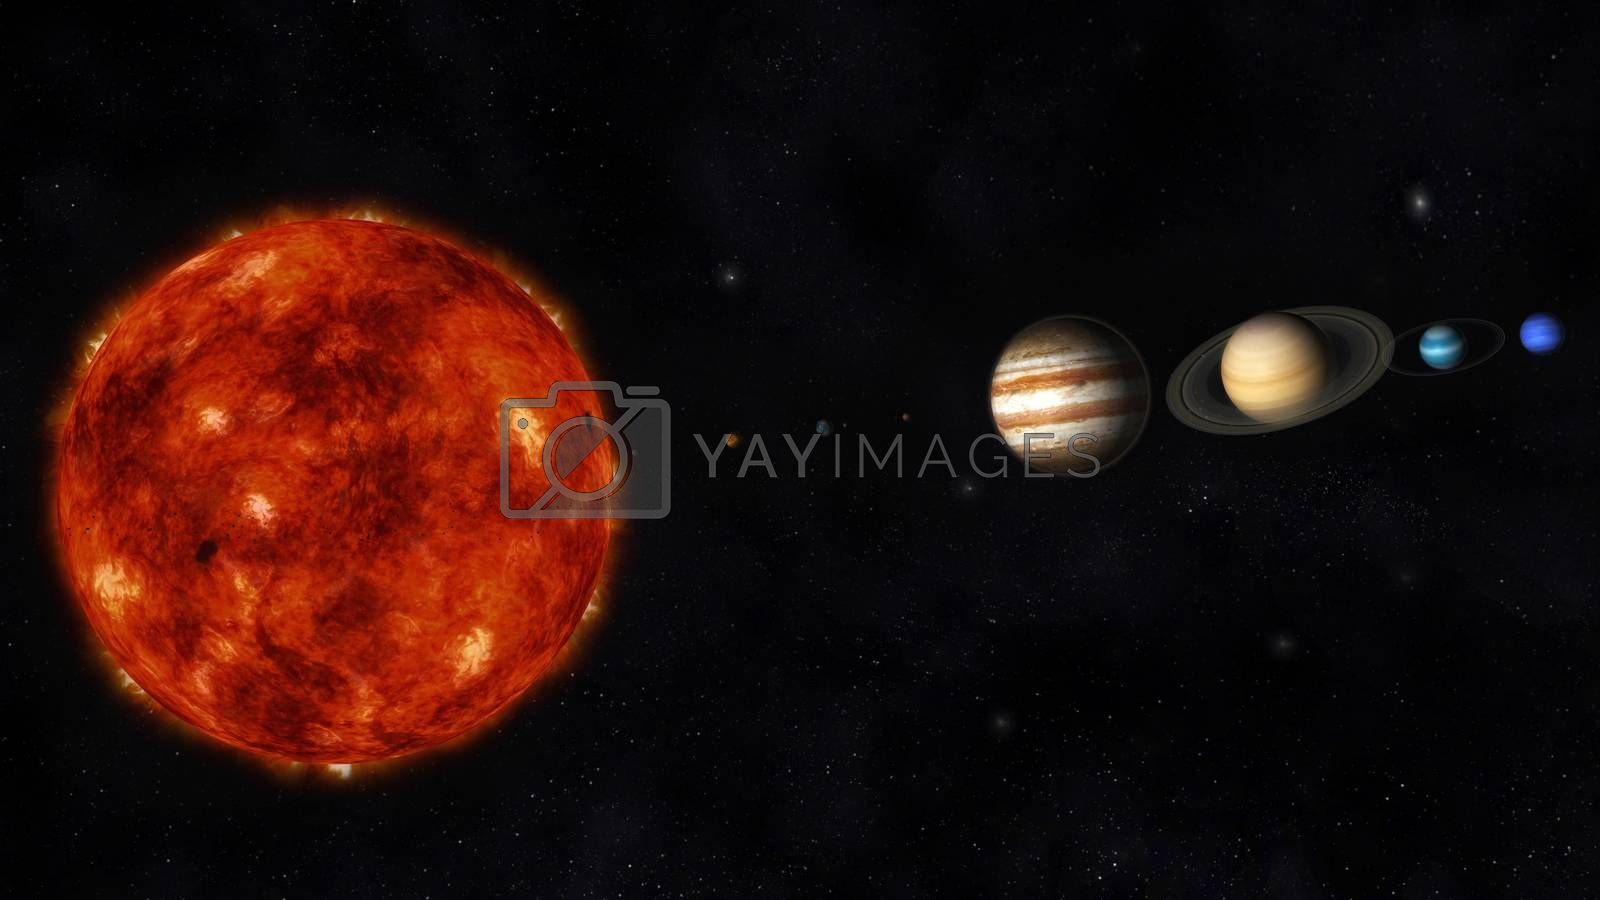 Digital Illustration of the Solar System